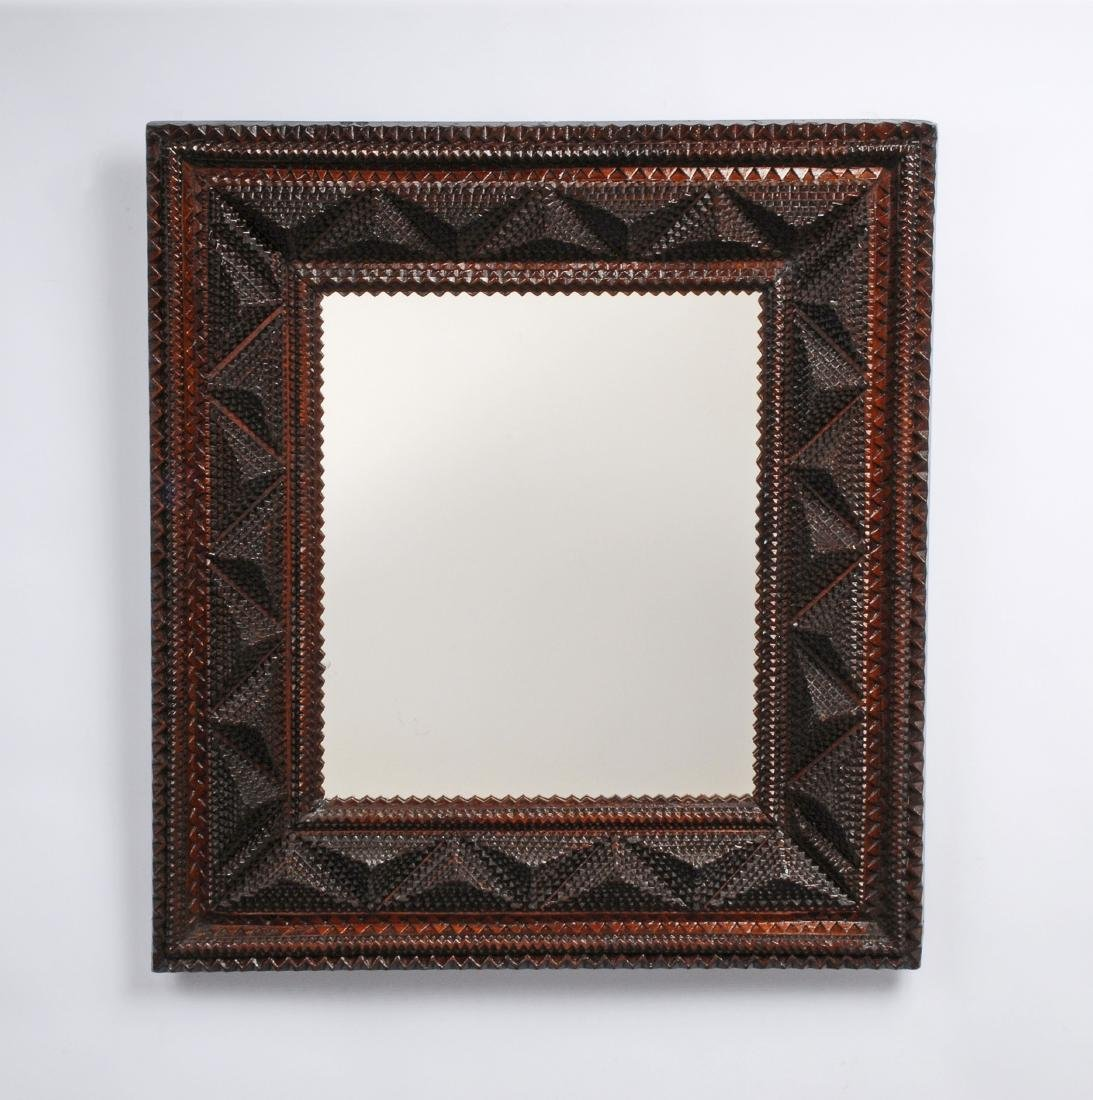 Deeply Layered Tramp Art Mirror Frame